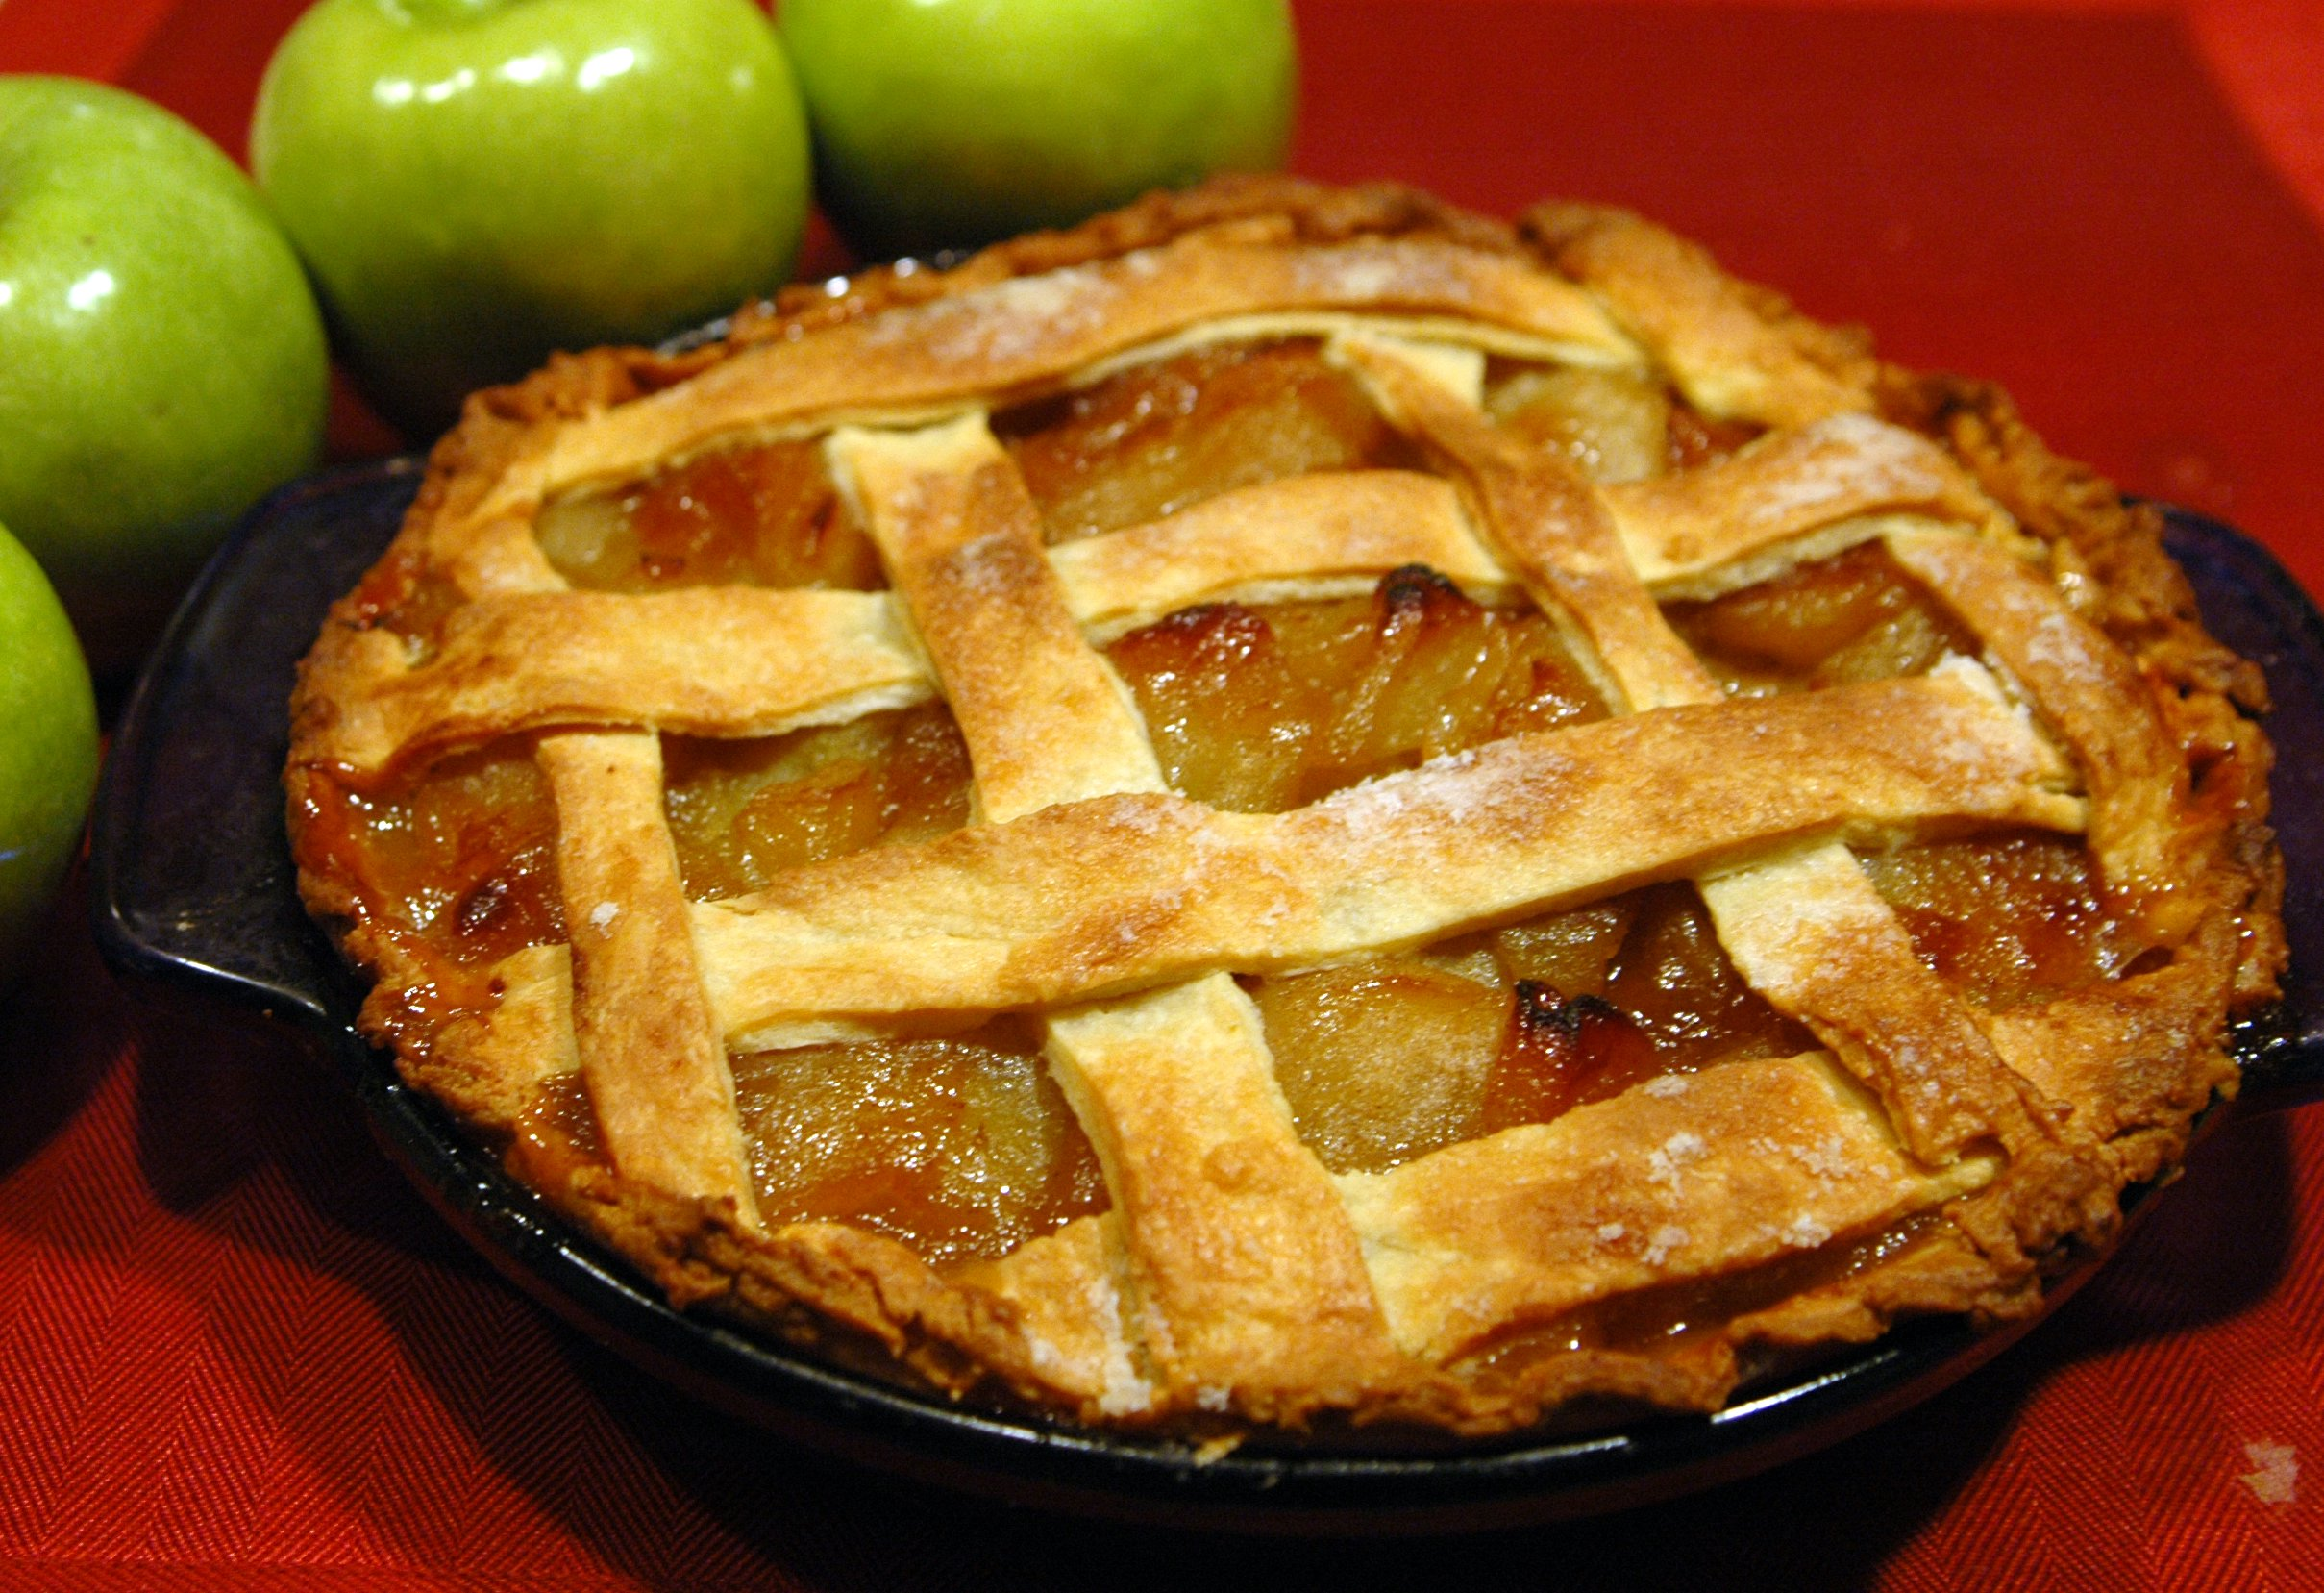 http://upload.wikimedia.org/wikipedia/commons/4/4b/Apple_pie.jpg